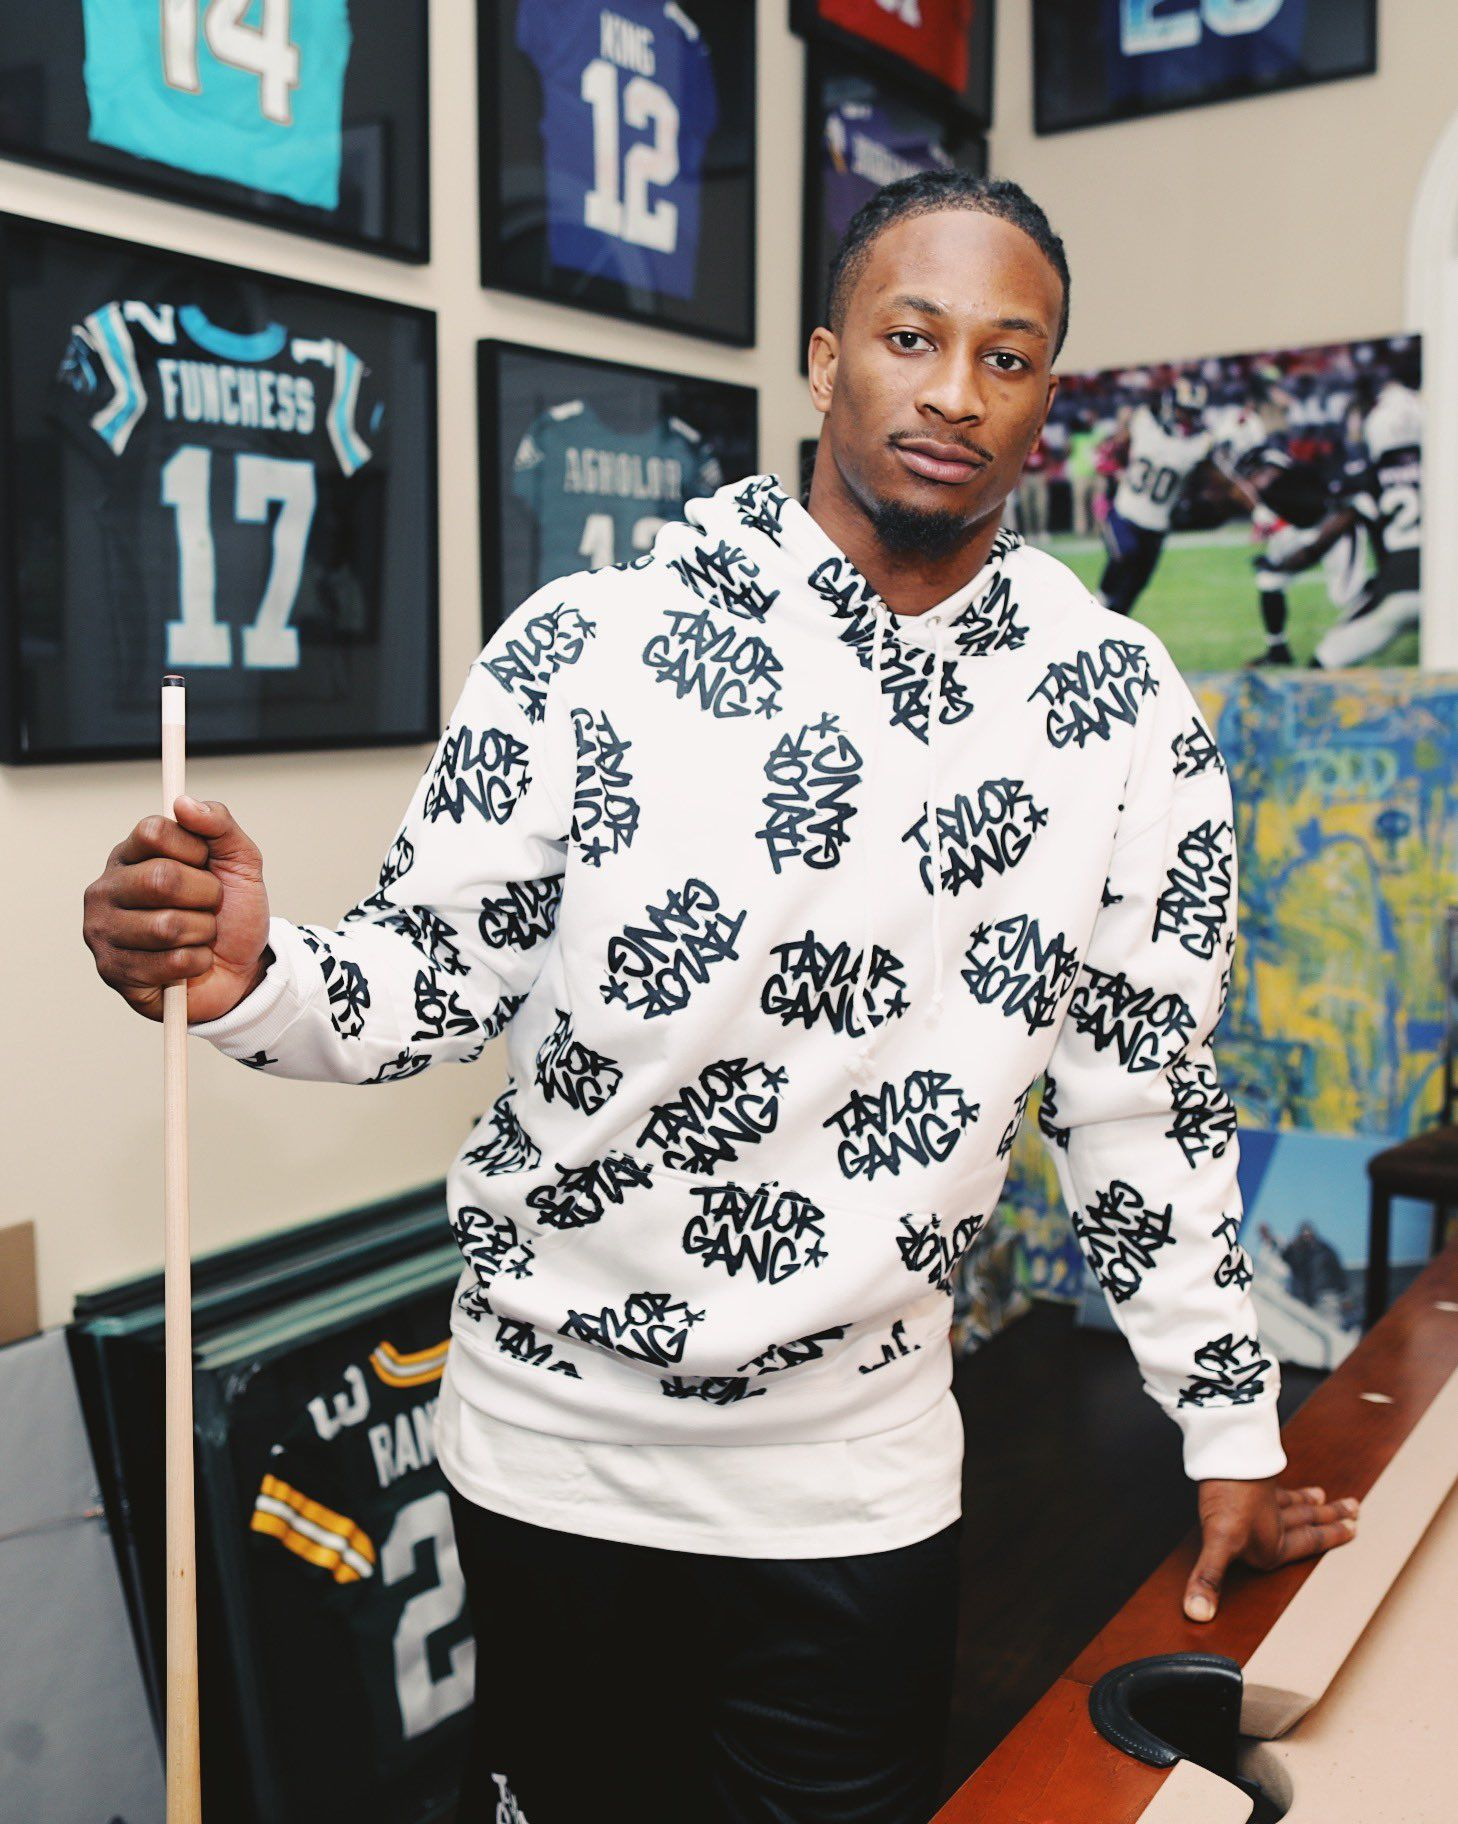 Pin By Jess On Todd Gurley Taylors Gang Todd Gurley Lounge Outfit